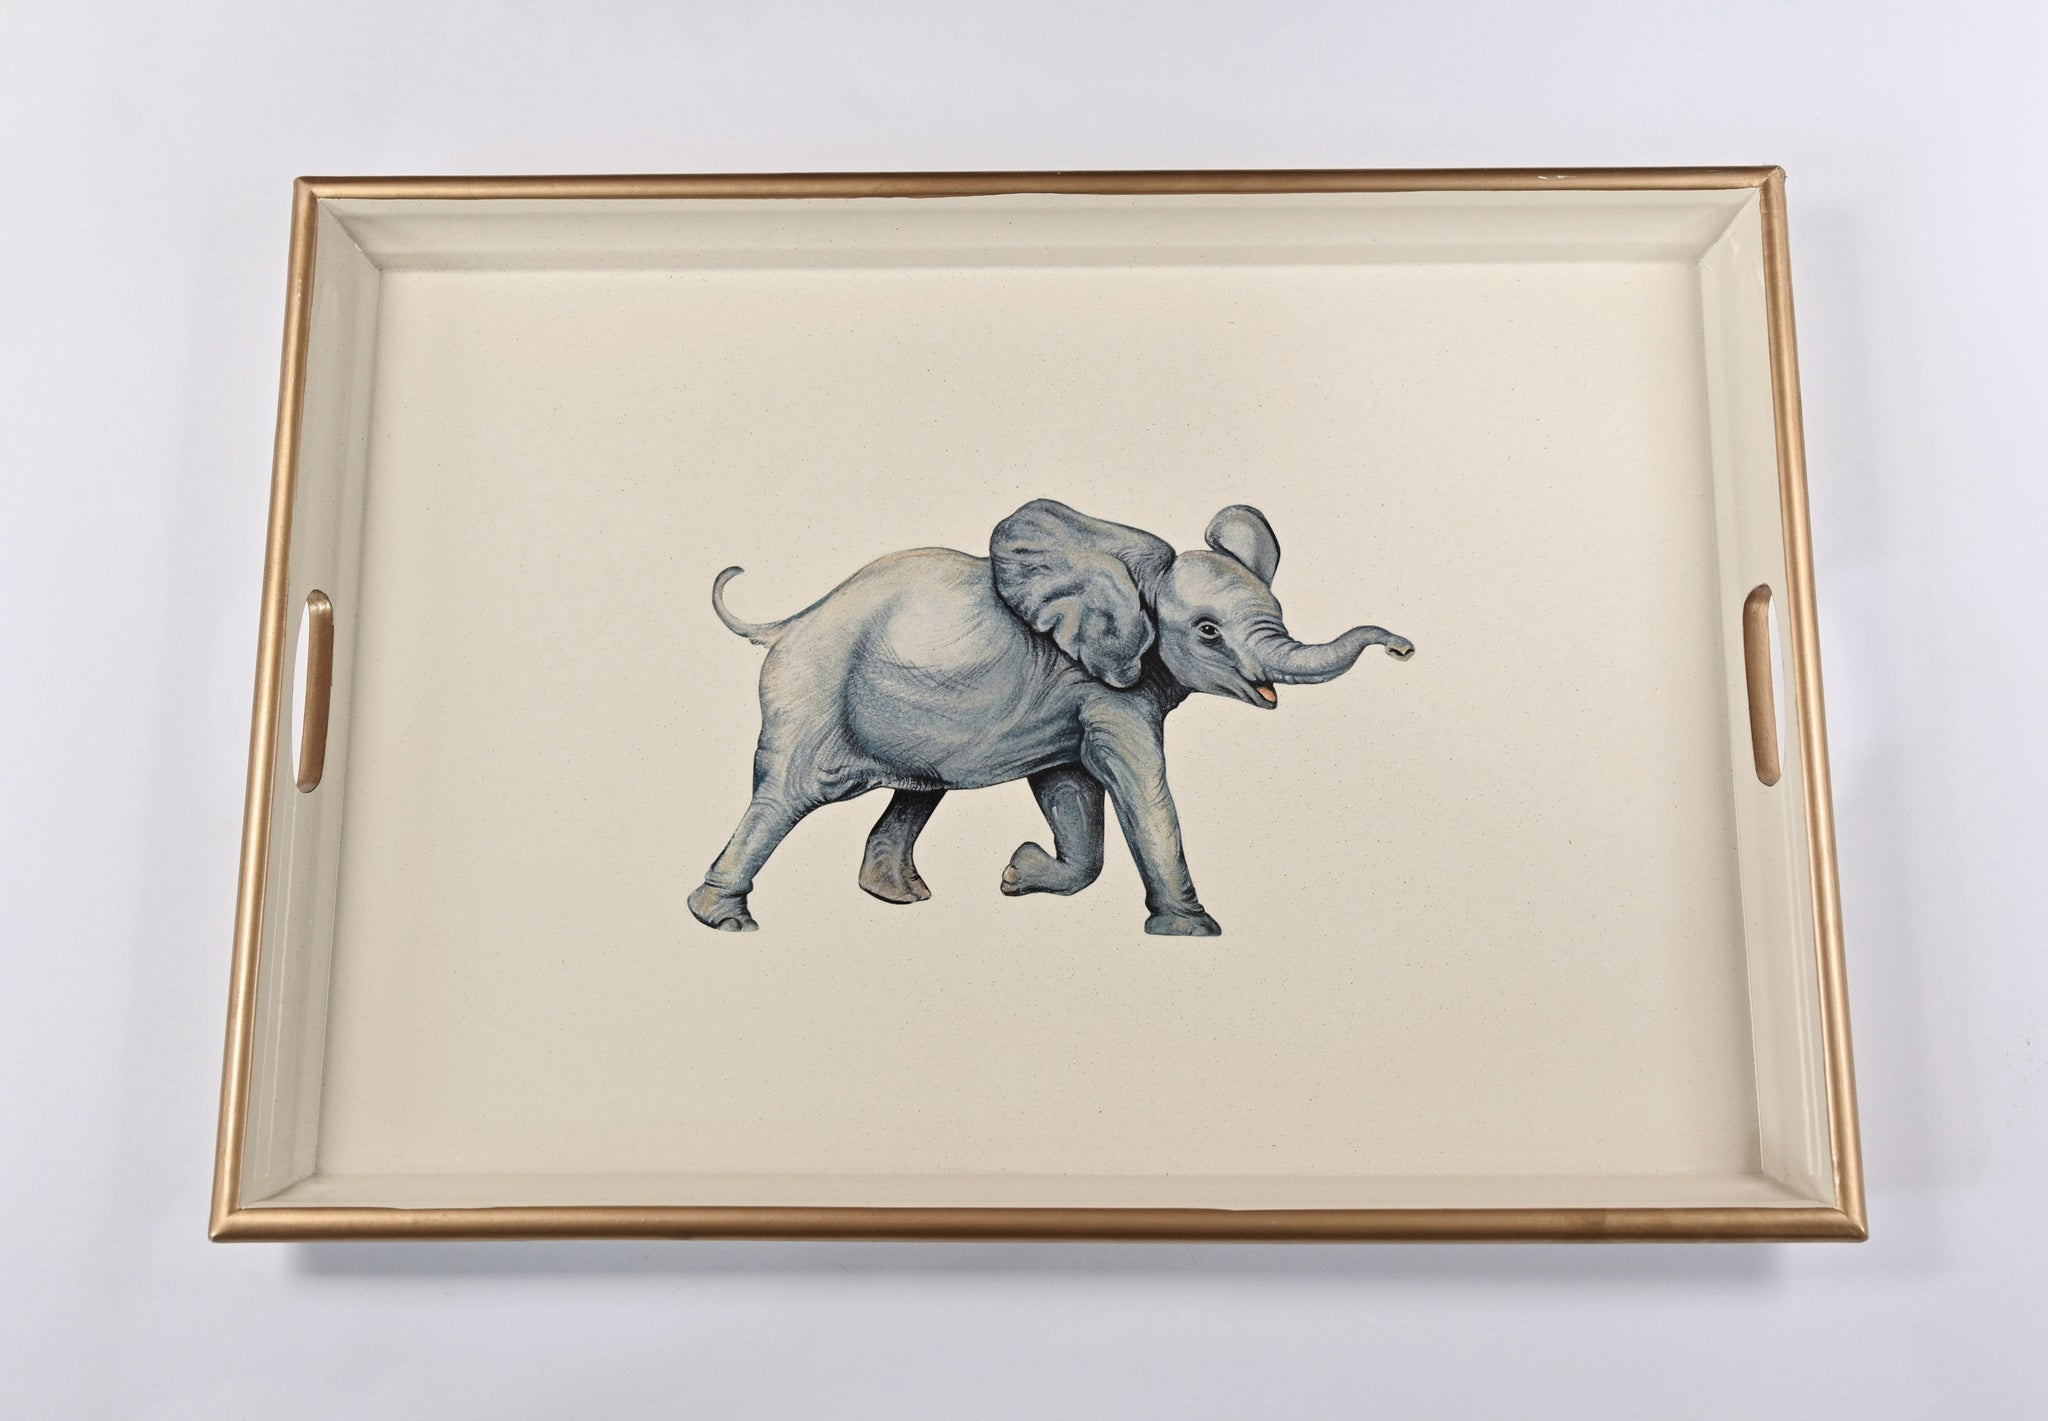 Large Wooden Tray: Elephant